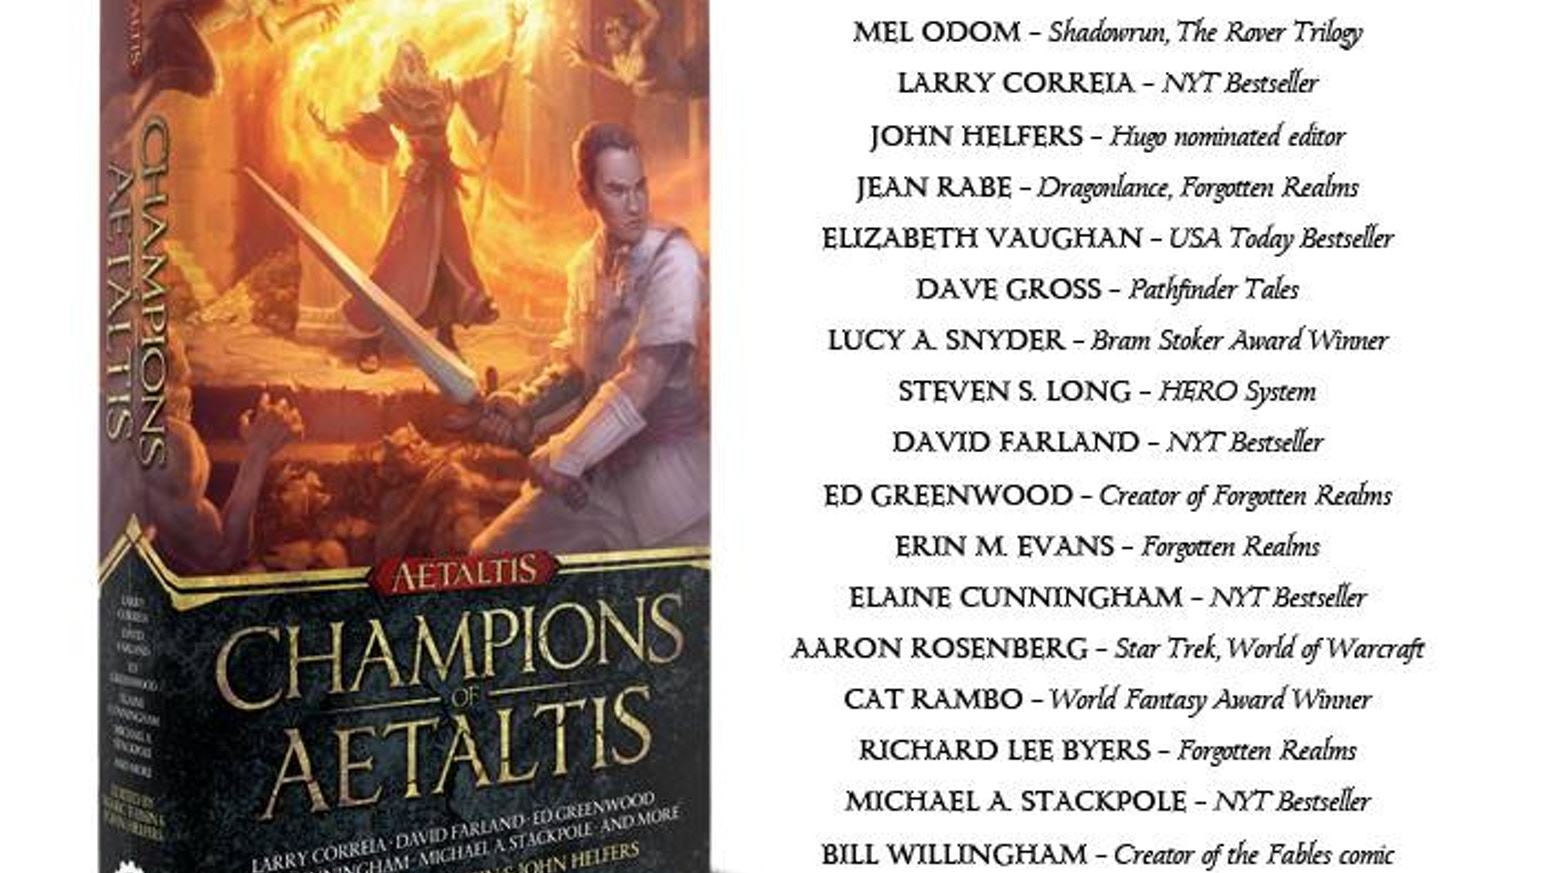 An anthology of heroic fantasy adventures featuring all new stories from some of the best authors in the business.